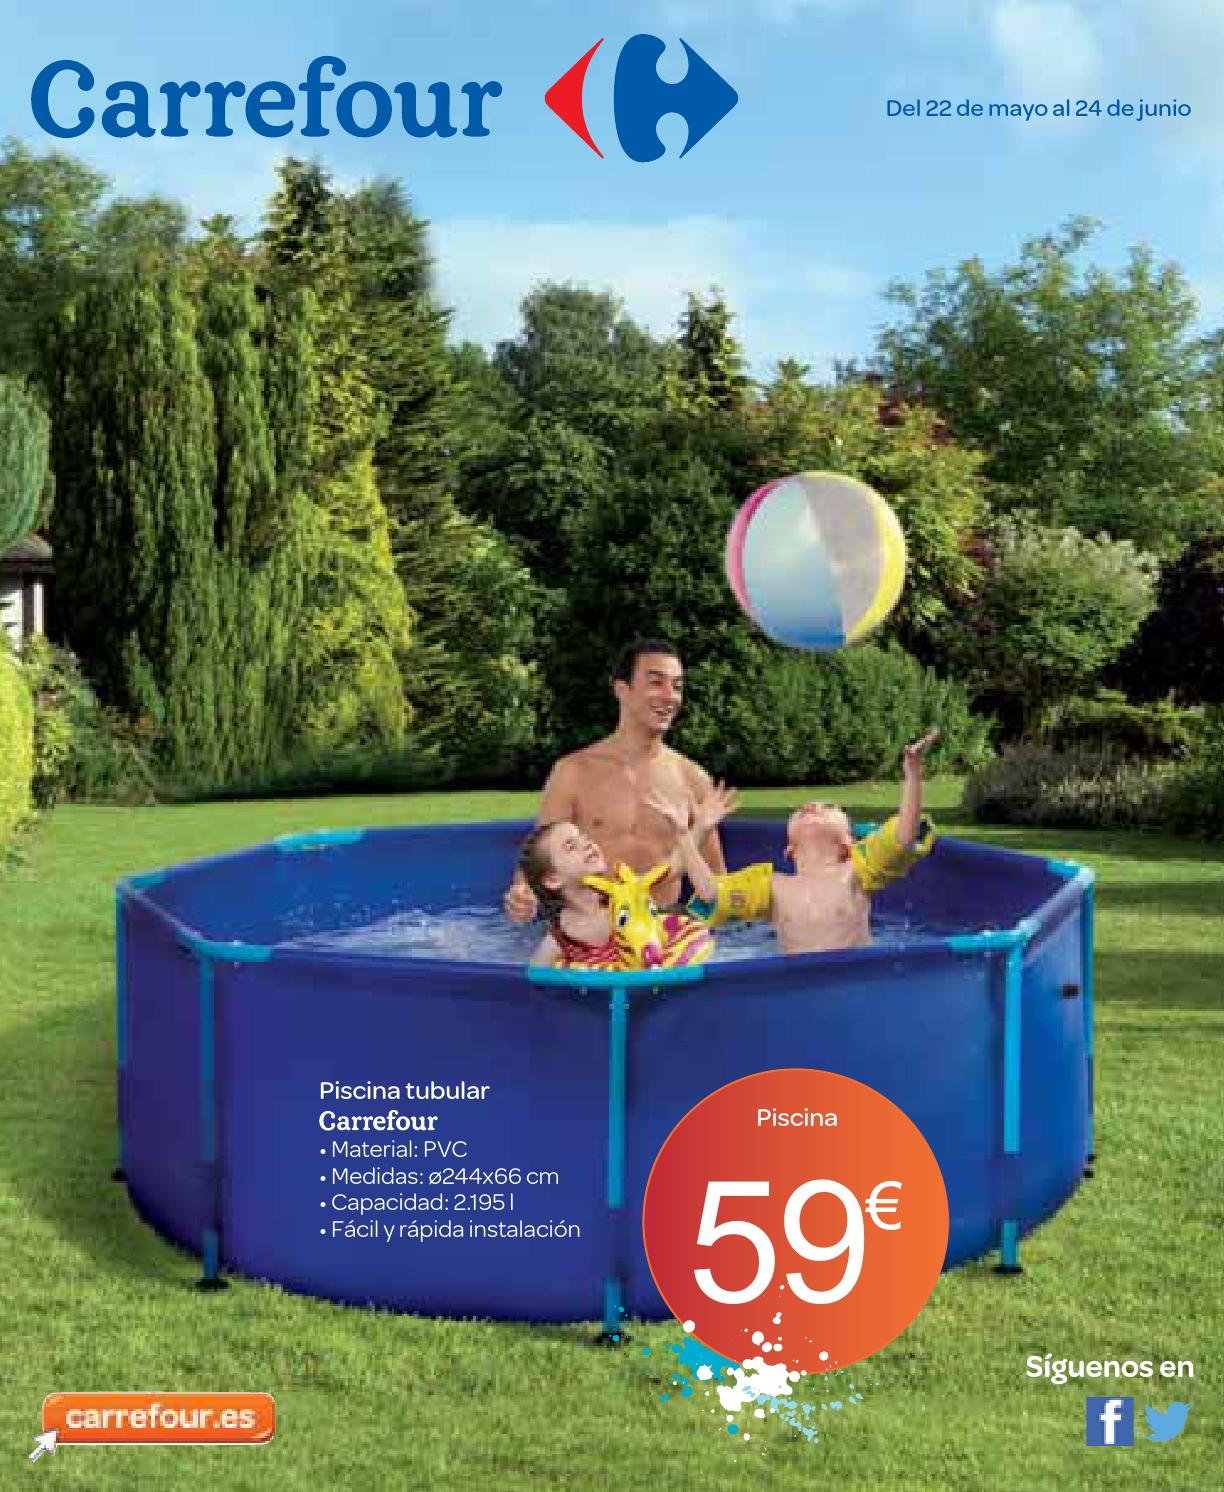 Piscina desmontable en carrefour for Carrefour piscinas intex